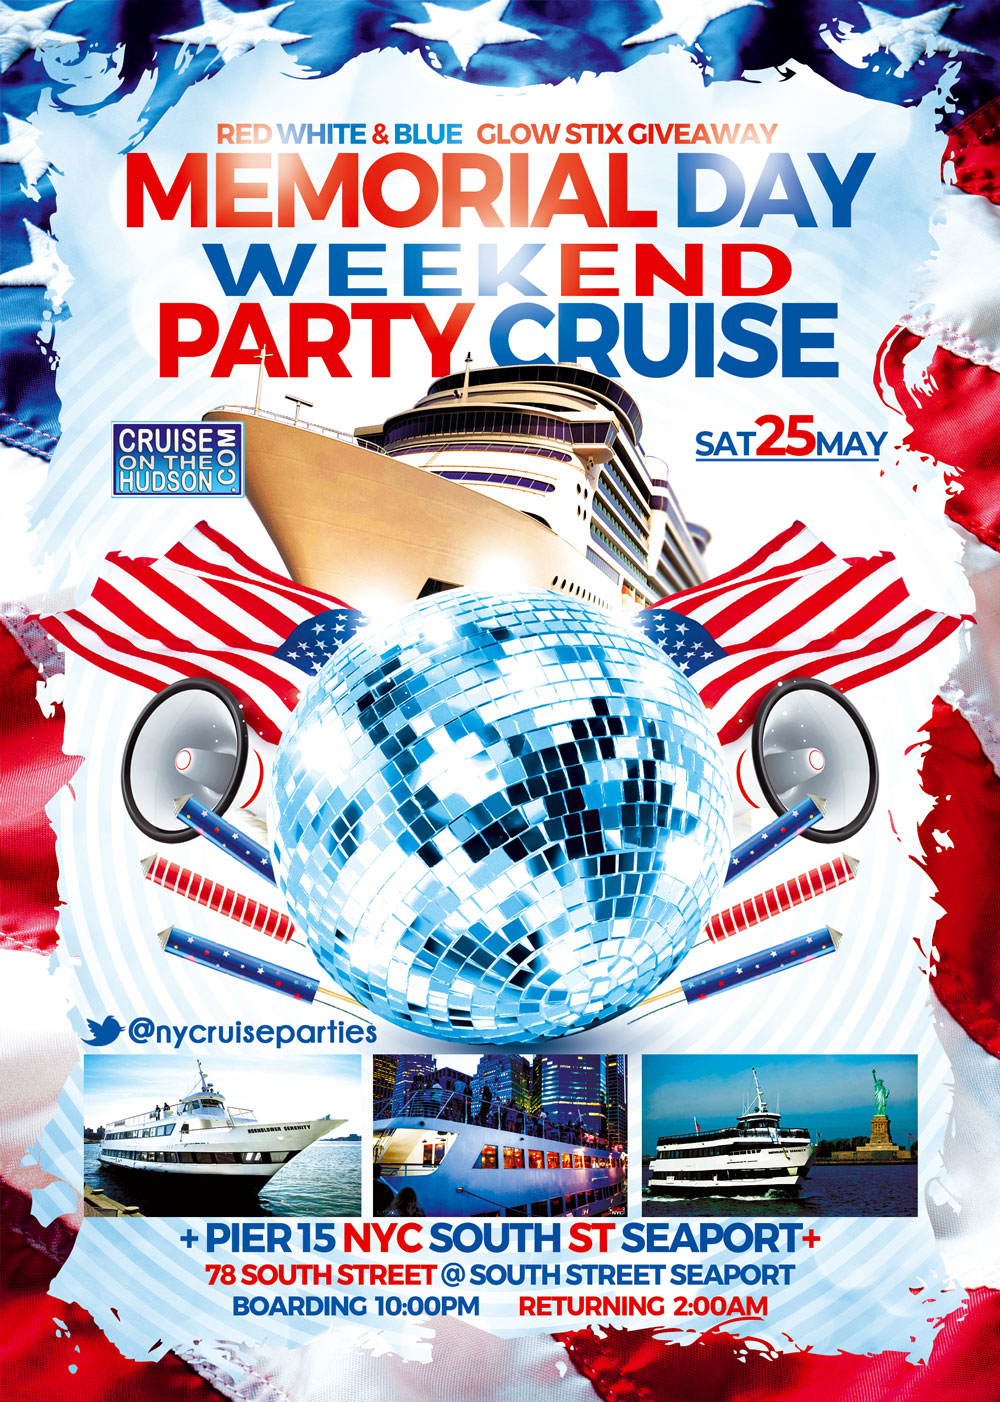 Memorial Day Weekend Party Dance Cruise Hornblower Serenity Yacht NYC at Pier 15 NYC Flyer